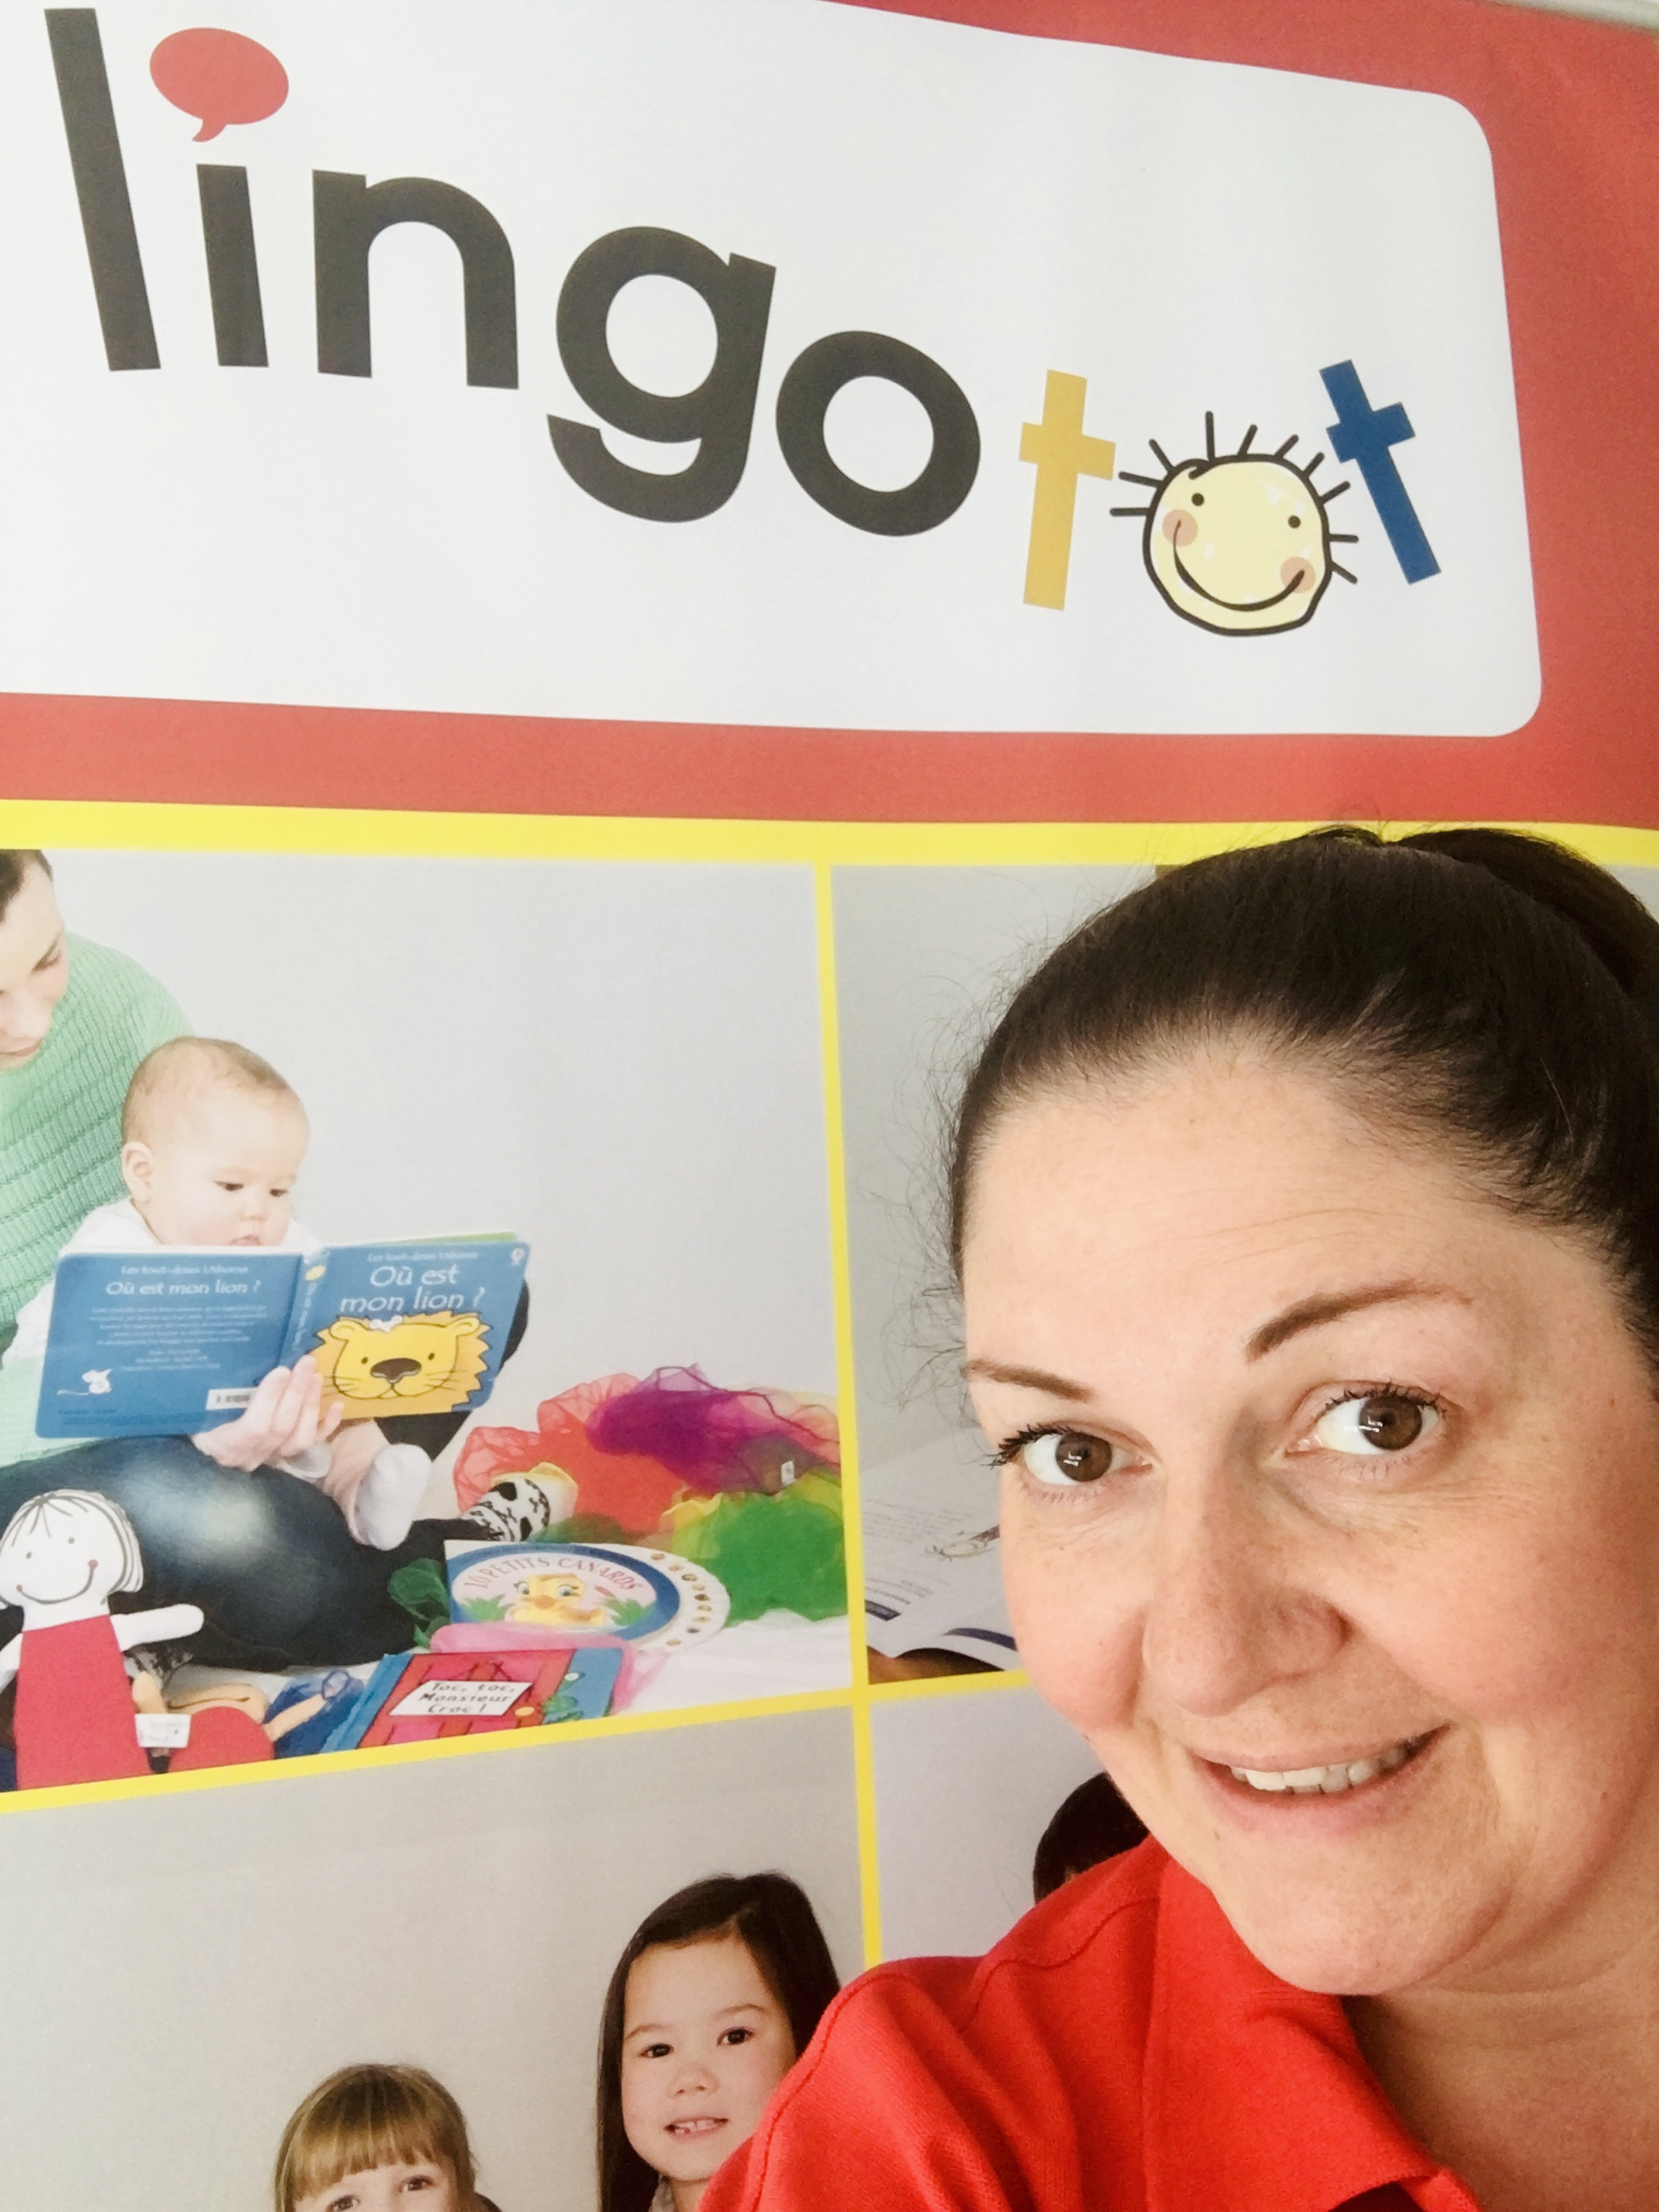 Franchisee Layla Riches managed to launch her Lingotot business in the 2nd month of lockdown.